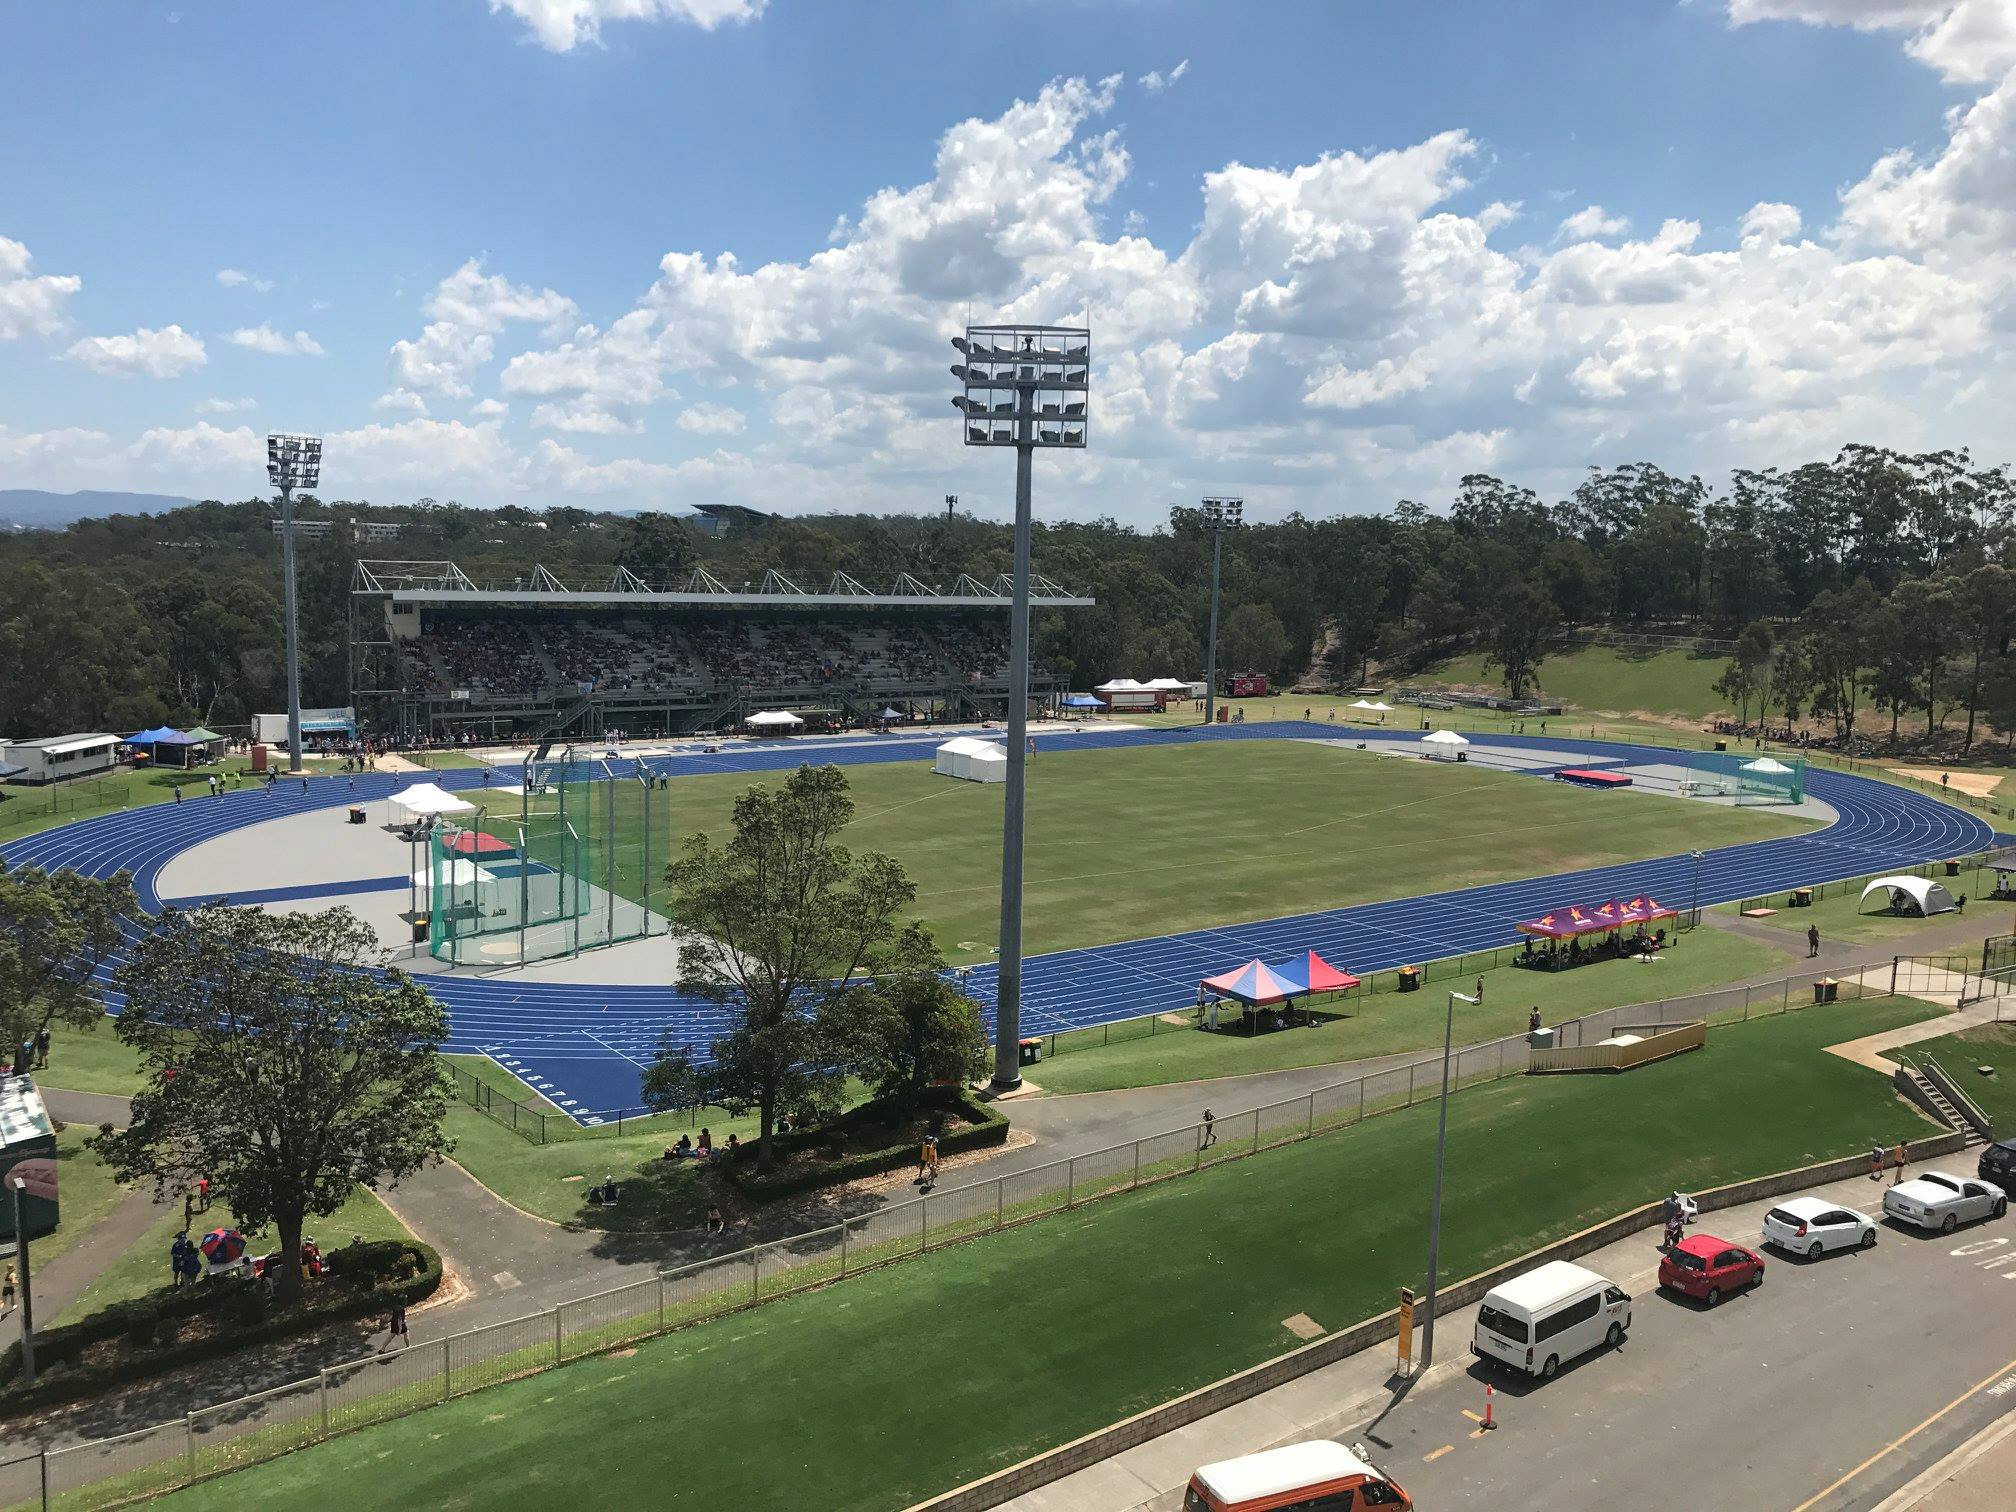 England's athletes will be using the Queensland Sport and Athletics Centre in Brisbane to prepare for the Commonwealth Games and its swimmers will be training at the Somerville House swimming pool ©Facebook